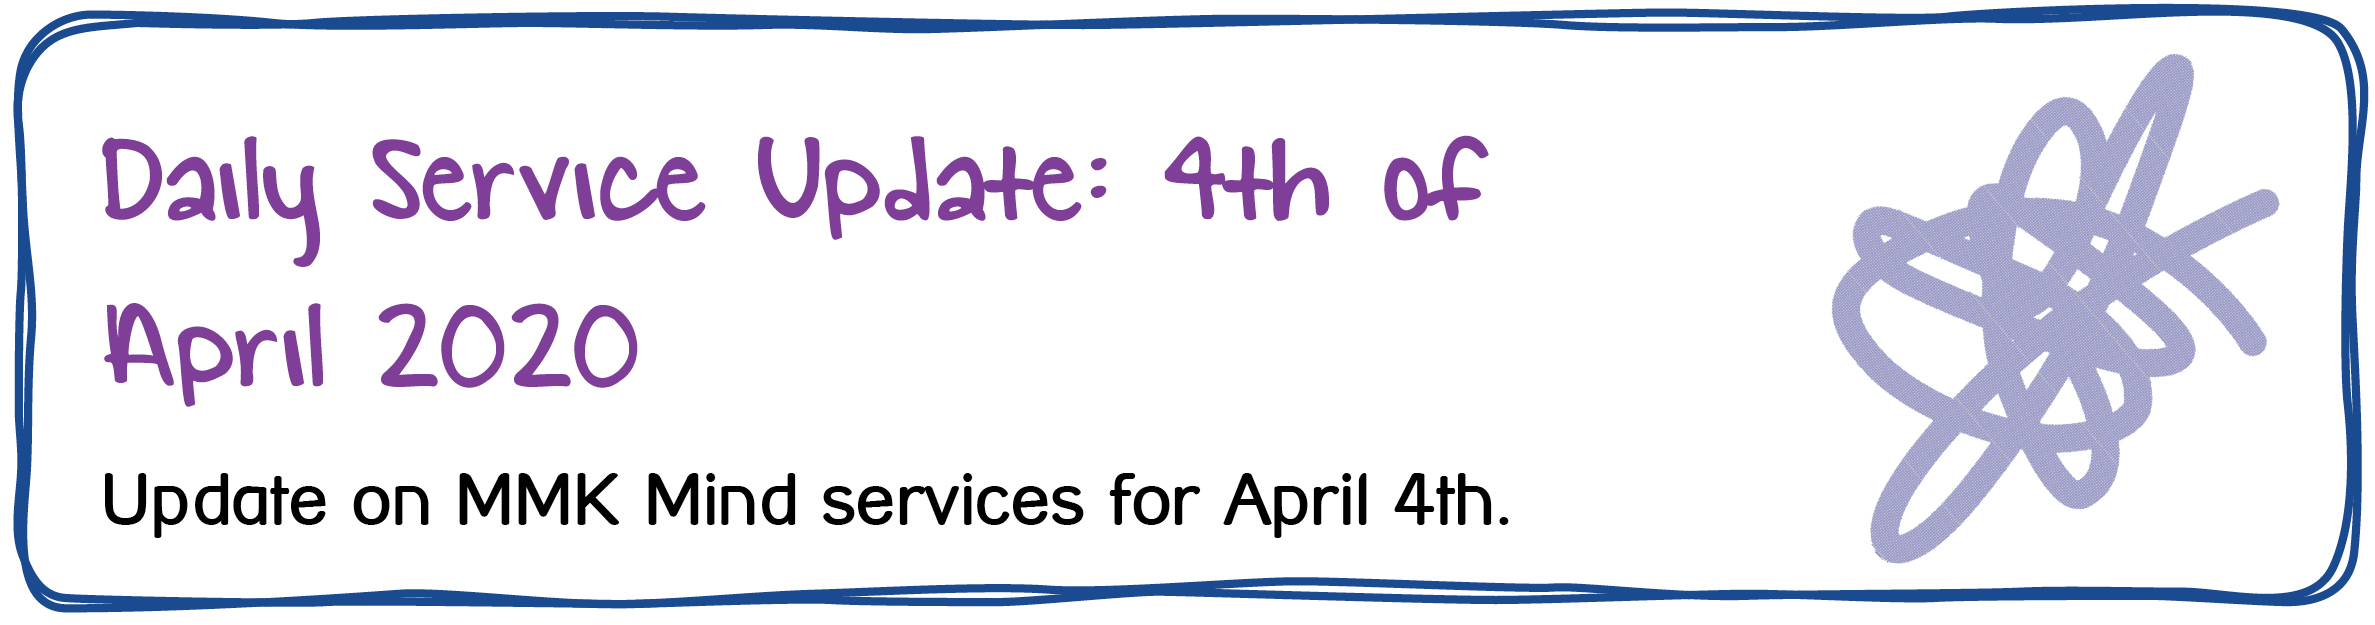 Daily Service Update: 4th of April 2020. Update on MMK Mind services for April 4th.